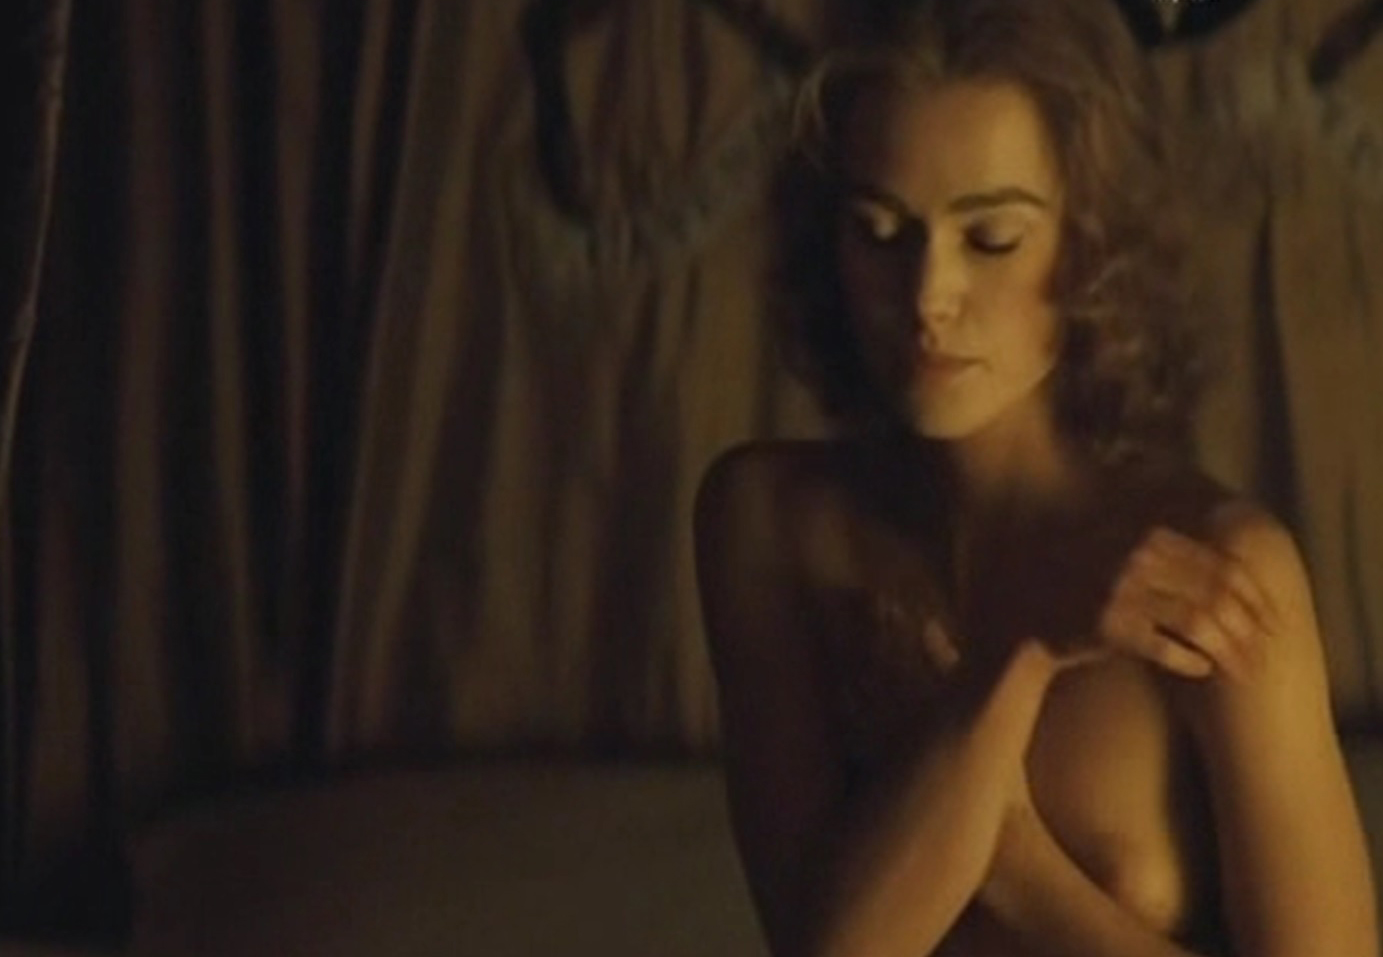 Have keira knightley nude movie apologise, but